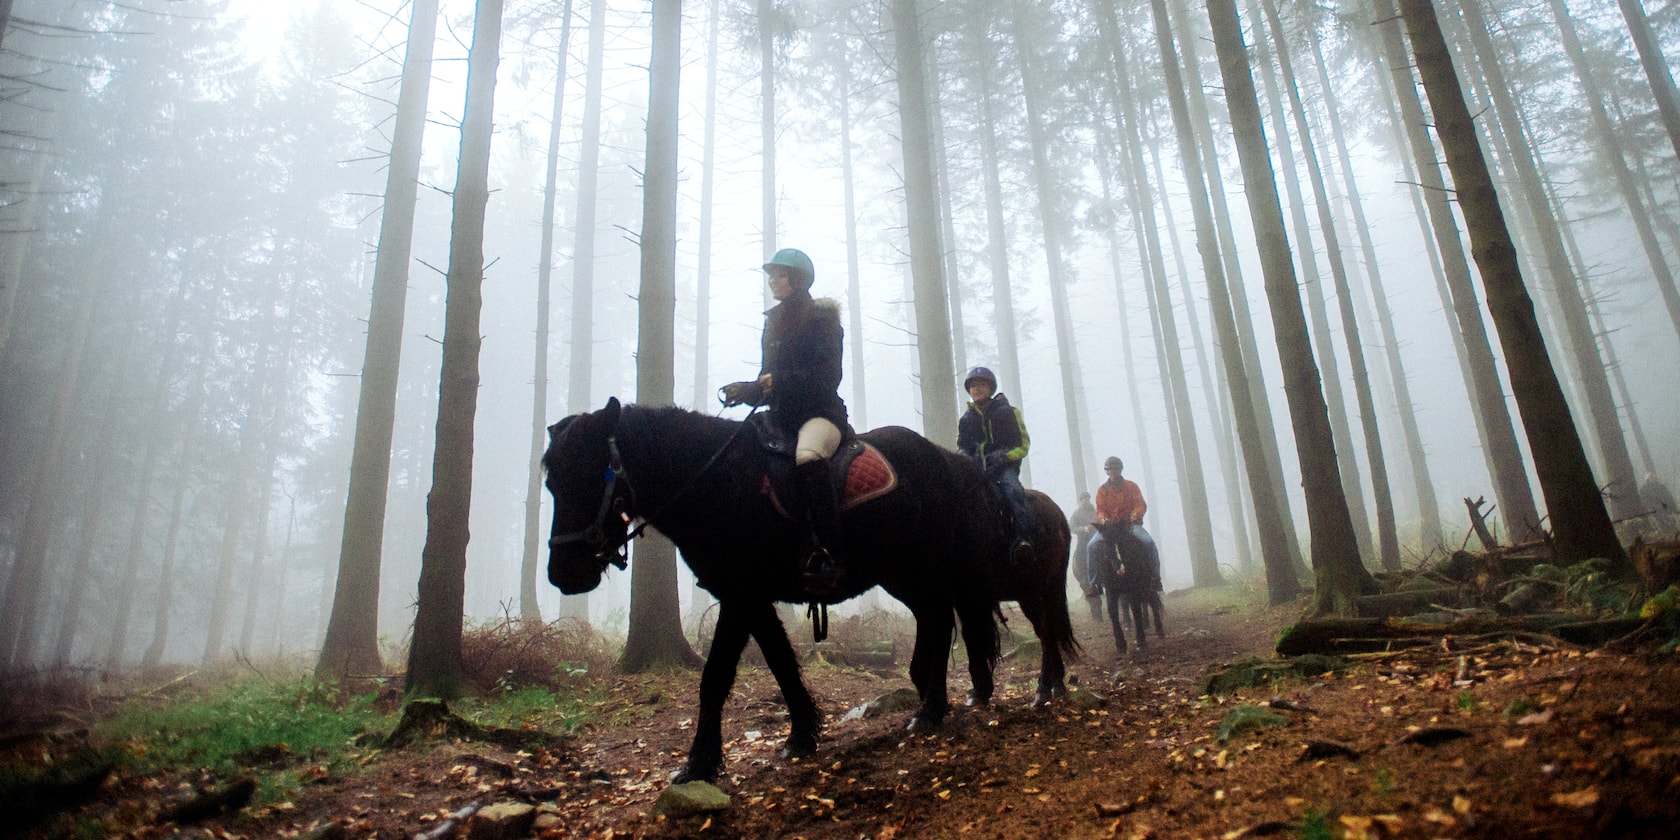 A group of riders on horseback ride along a trail through a forest of tall trees